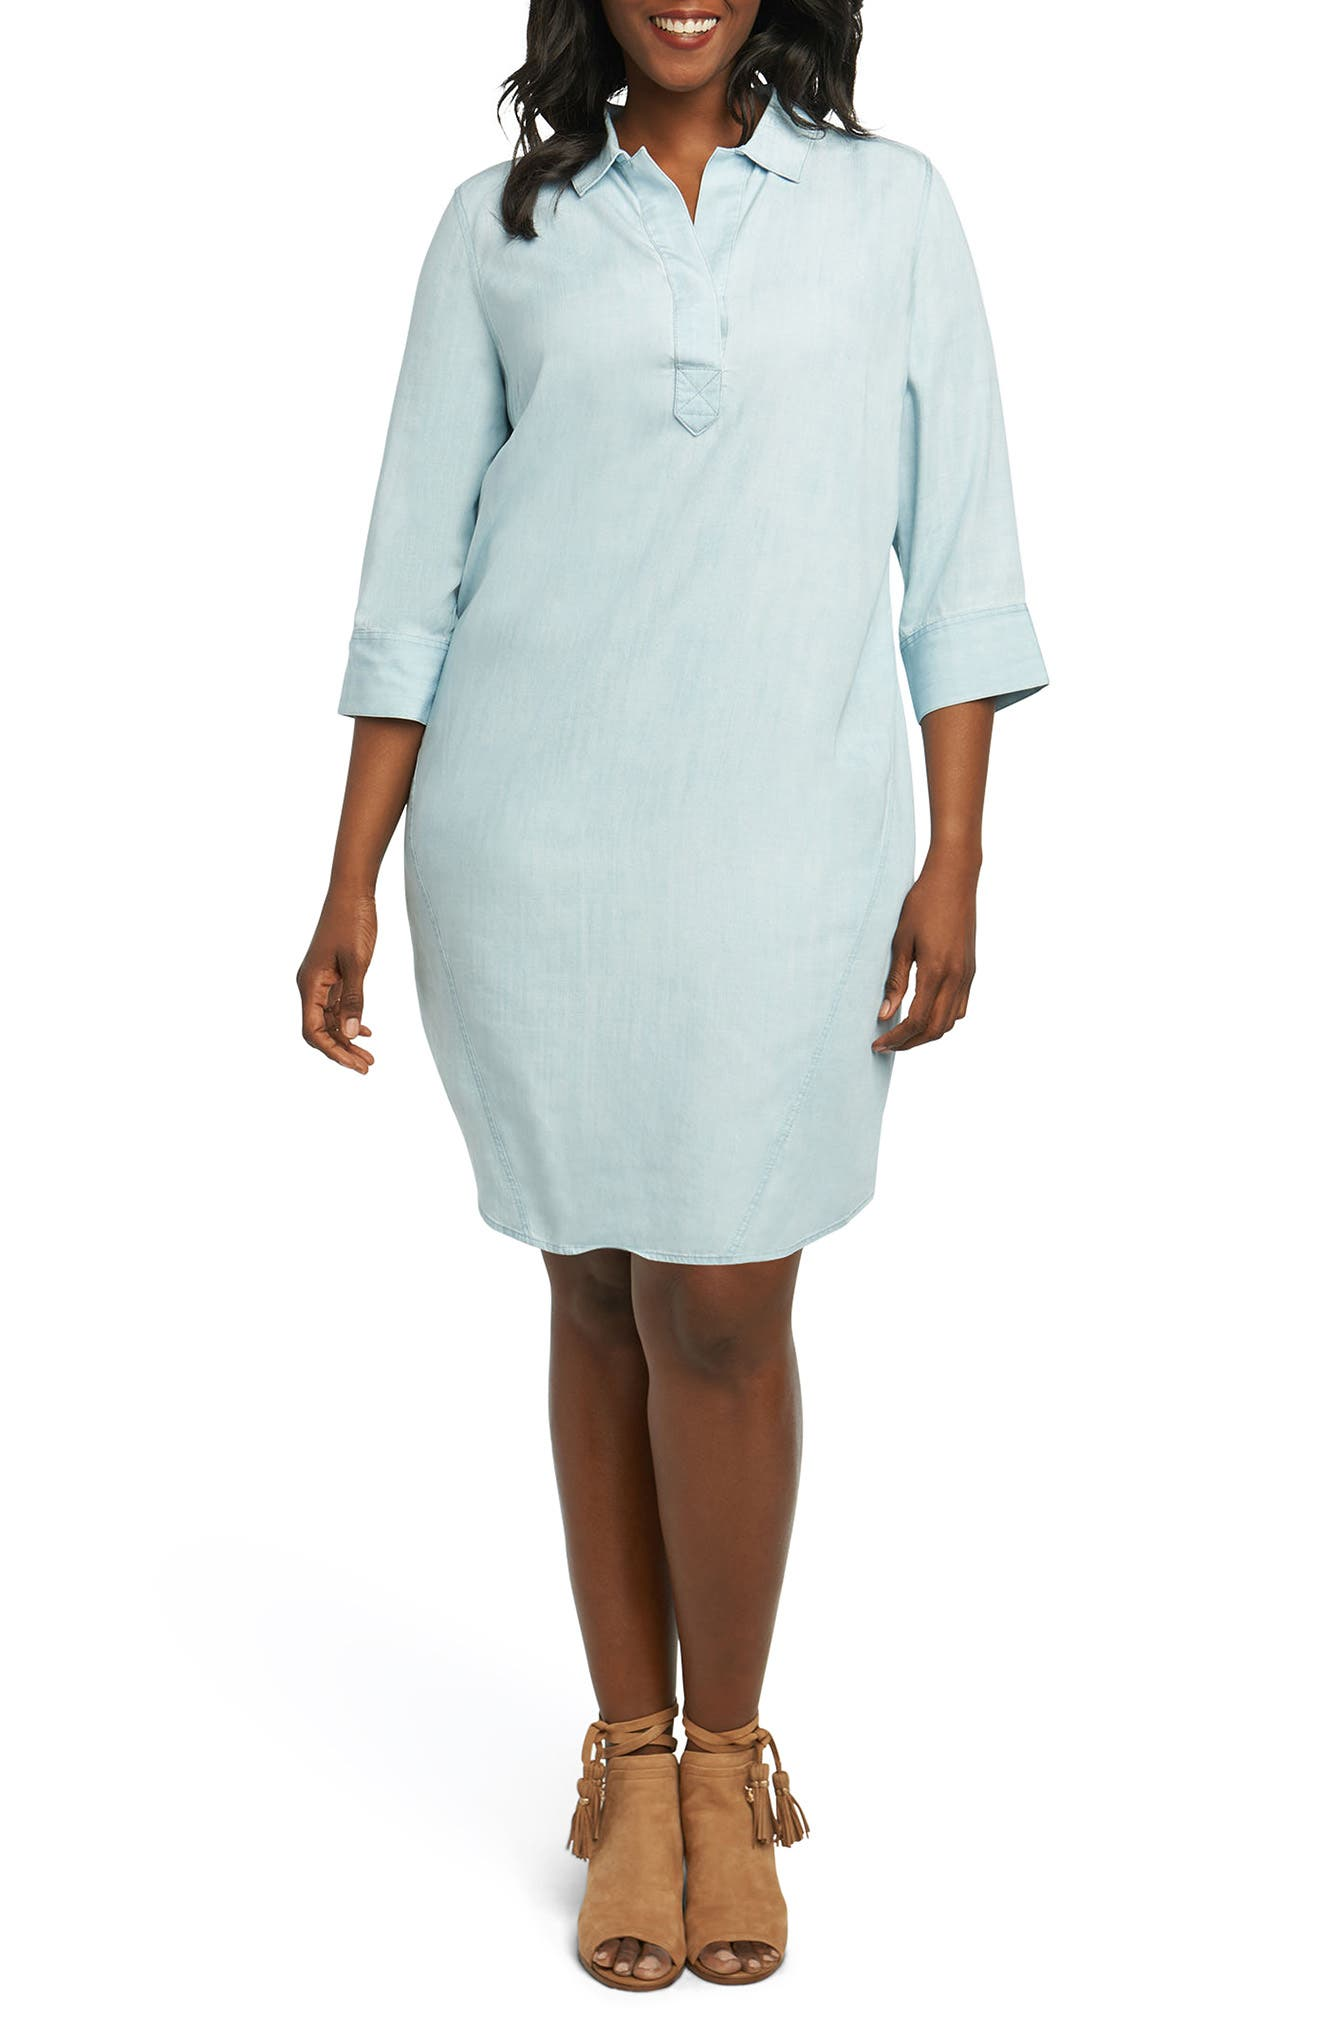 Alternate Image 1 Selected - Foxcroft Nicolette Chambray Shift Dress (Plus Size)